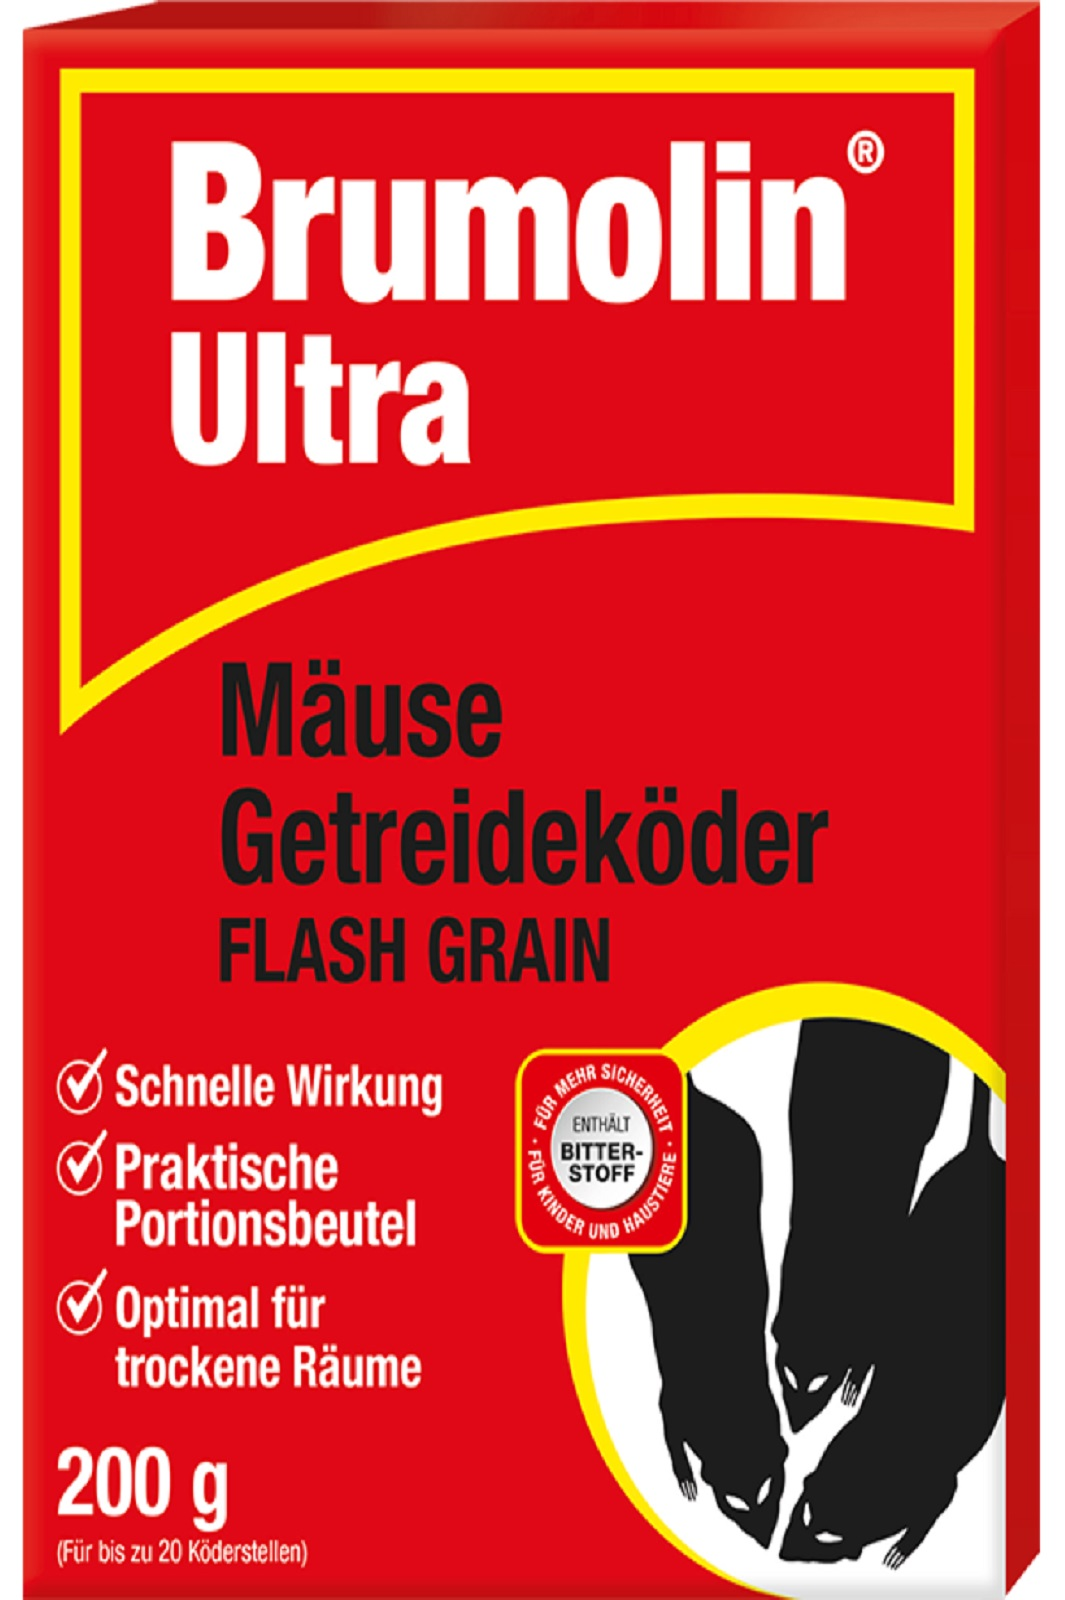 Brumolin Ultra Flash Grain Mäuse Getreideköder